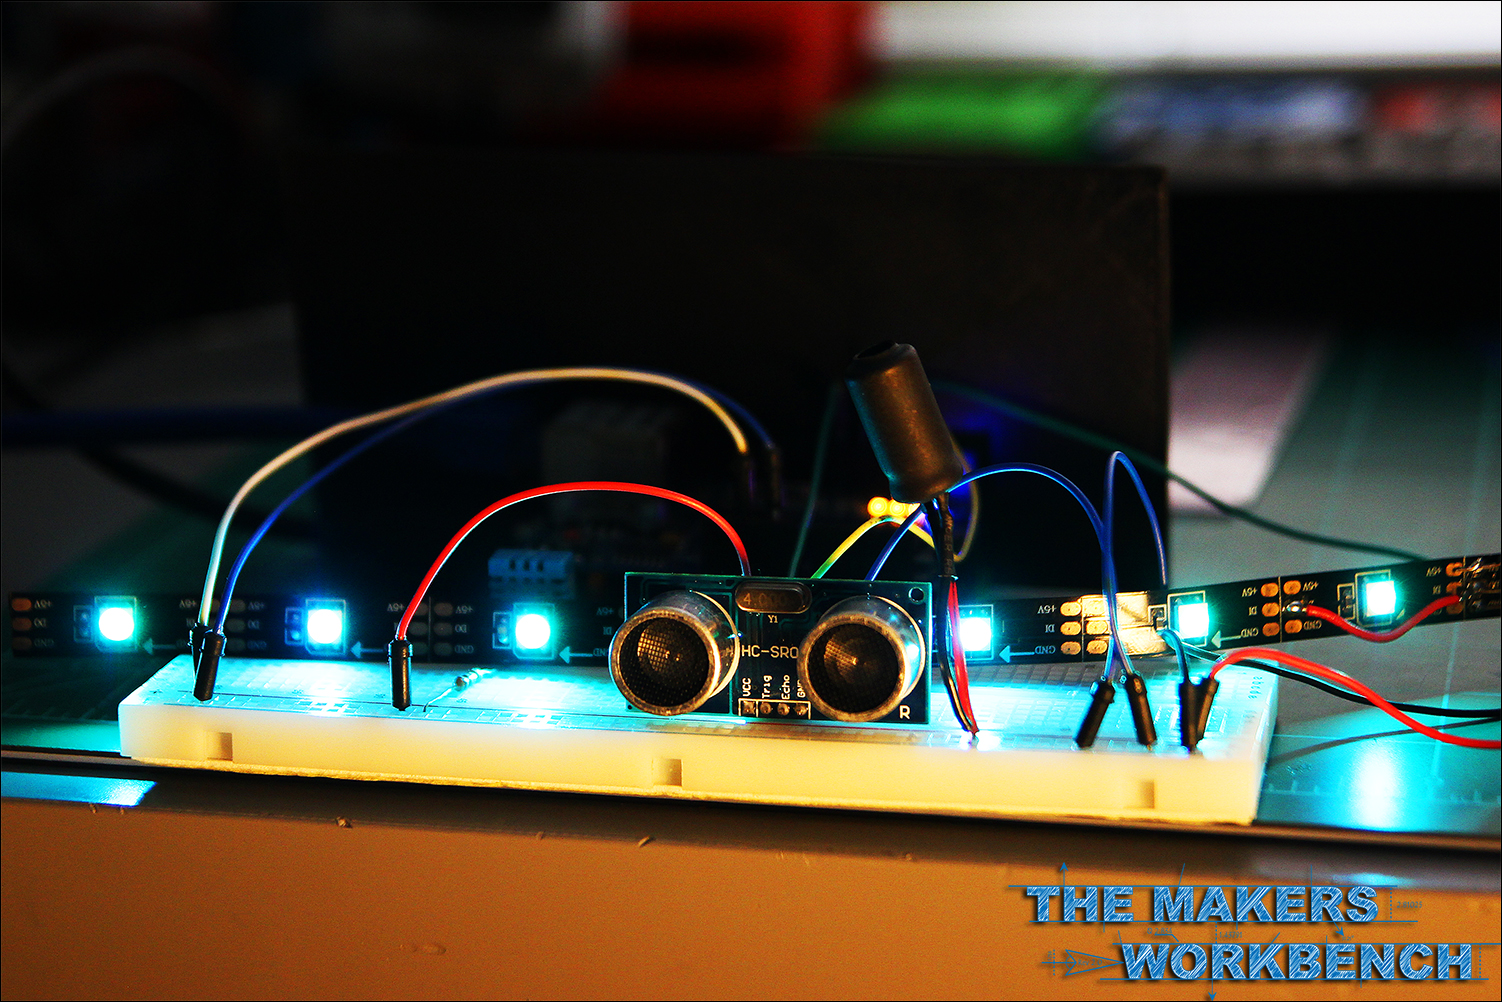 Illuminating NeoPixel LED's using an Arduino and a HC-SR04 Ultrasonic (Ping) Distance Sensor.